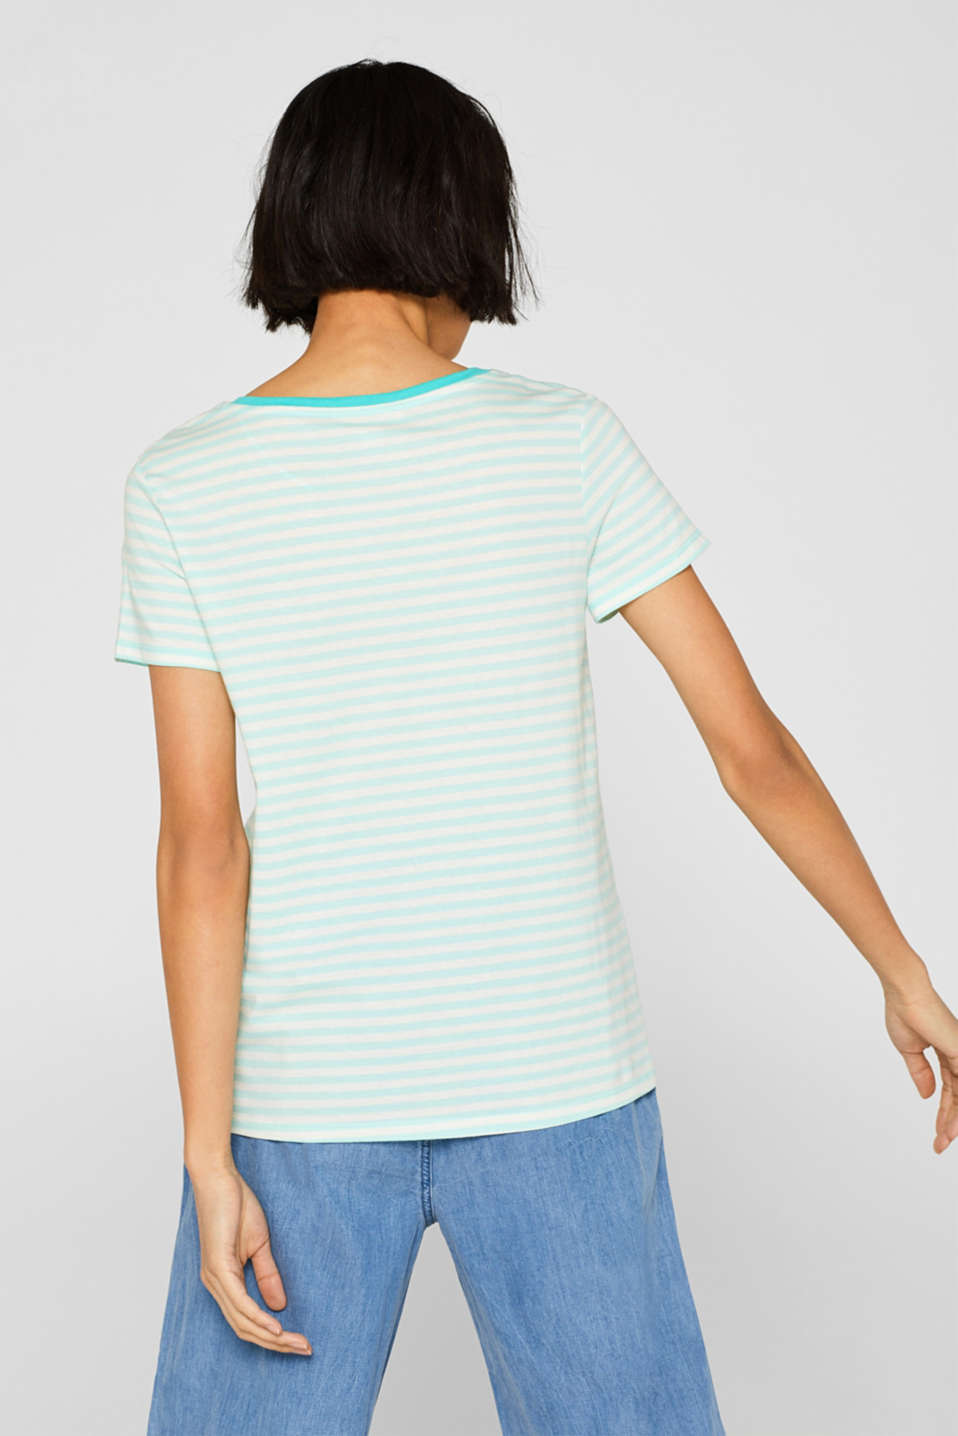 Striped T-shirt with a contrasting trim, 100% cotton, AQUA GREEN, detail image number 3